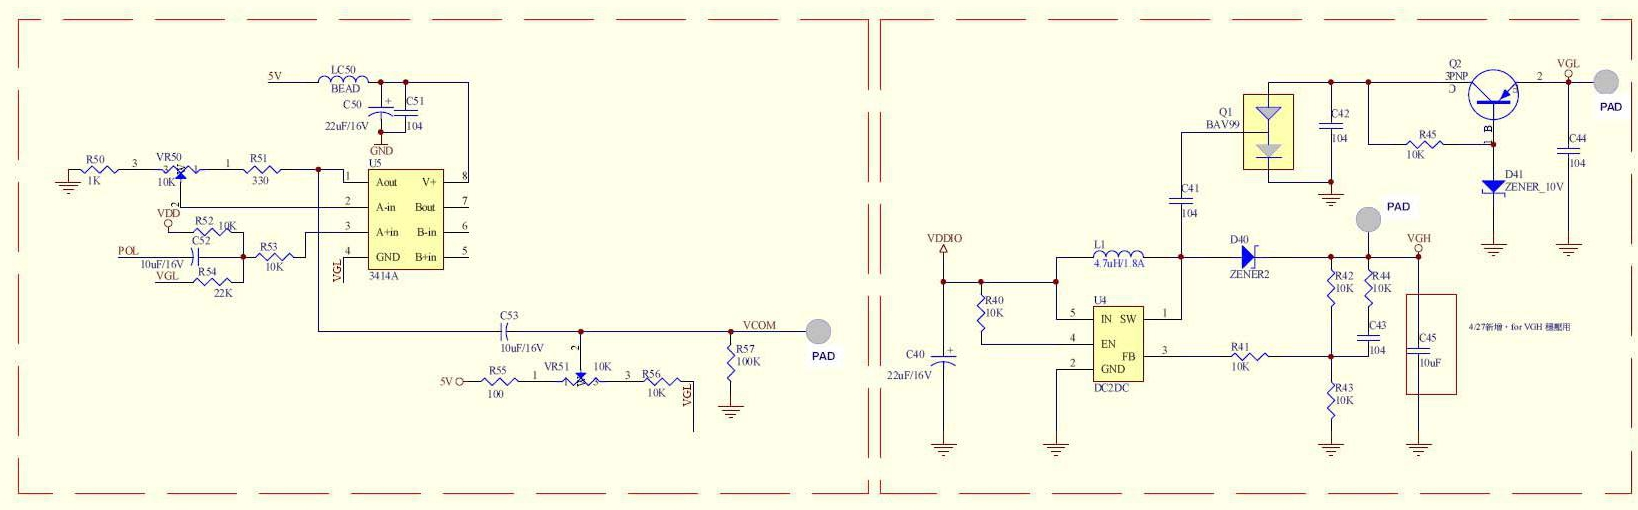 LED Drivers/LCD Bias - schematic